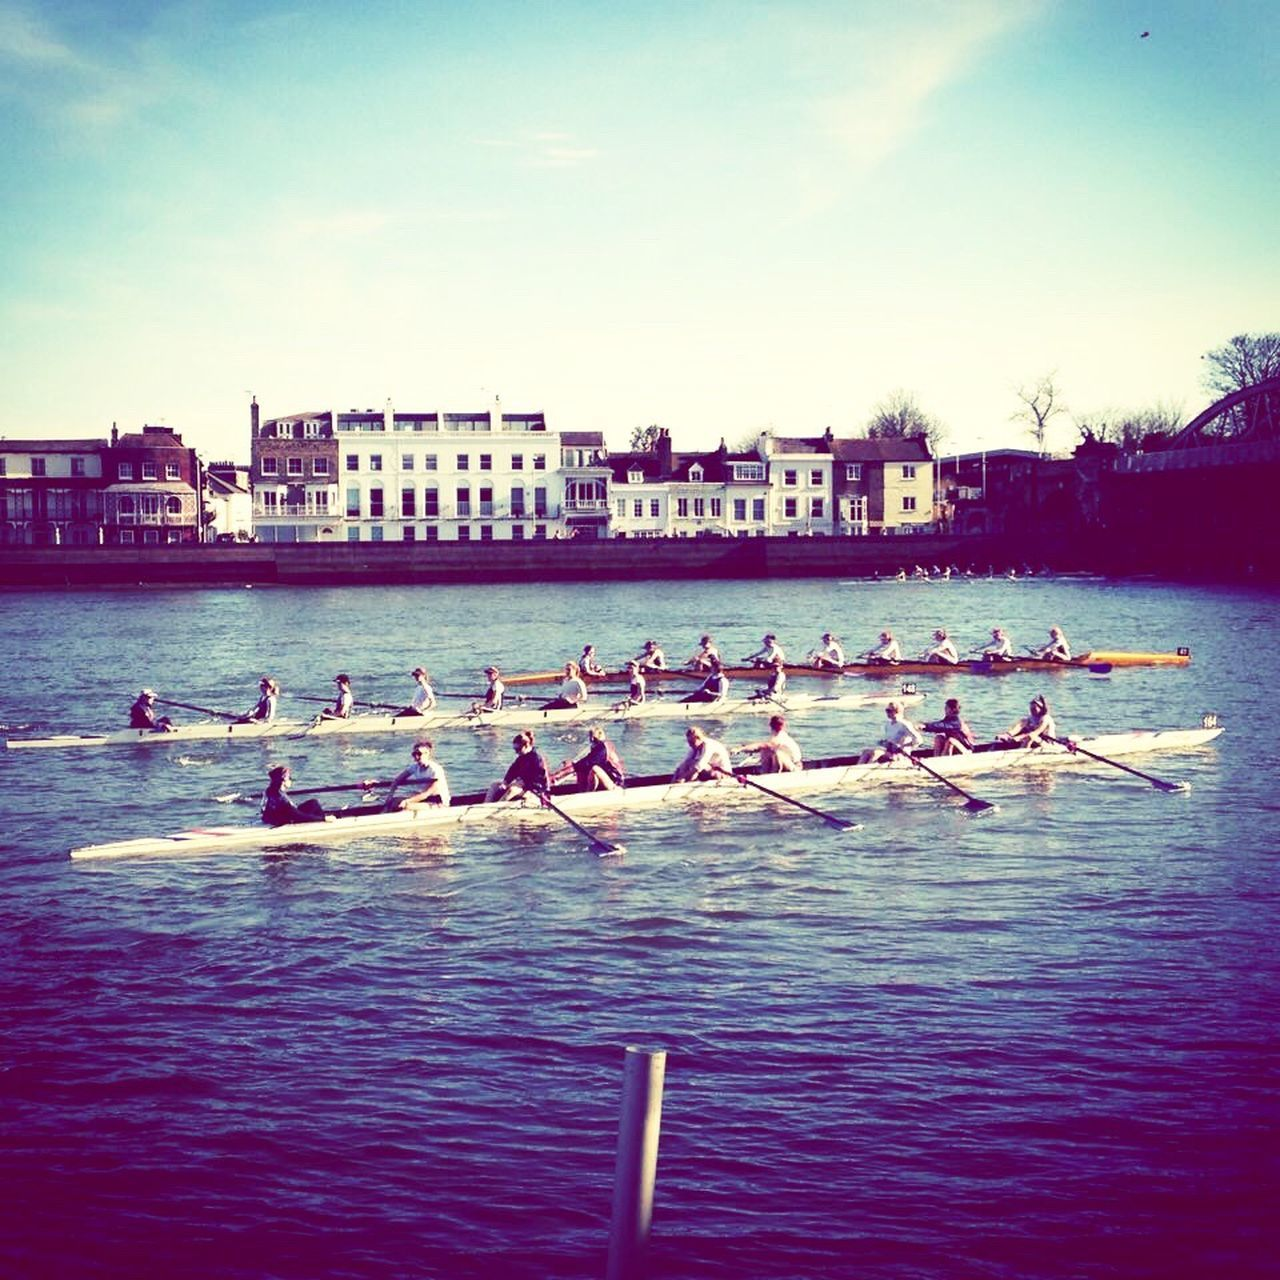 Rowing Rowingboat Rowing Team Rowingispassion Club Girls Rowing Race Thamesriver Women's Head Of The River